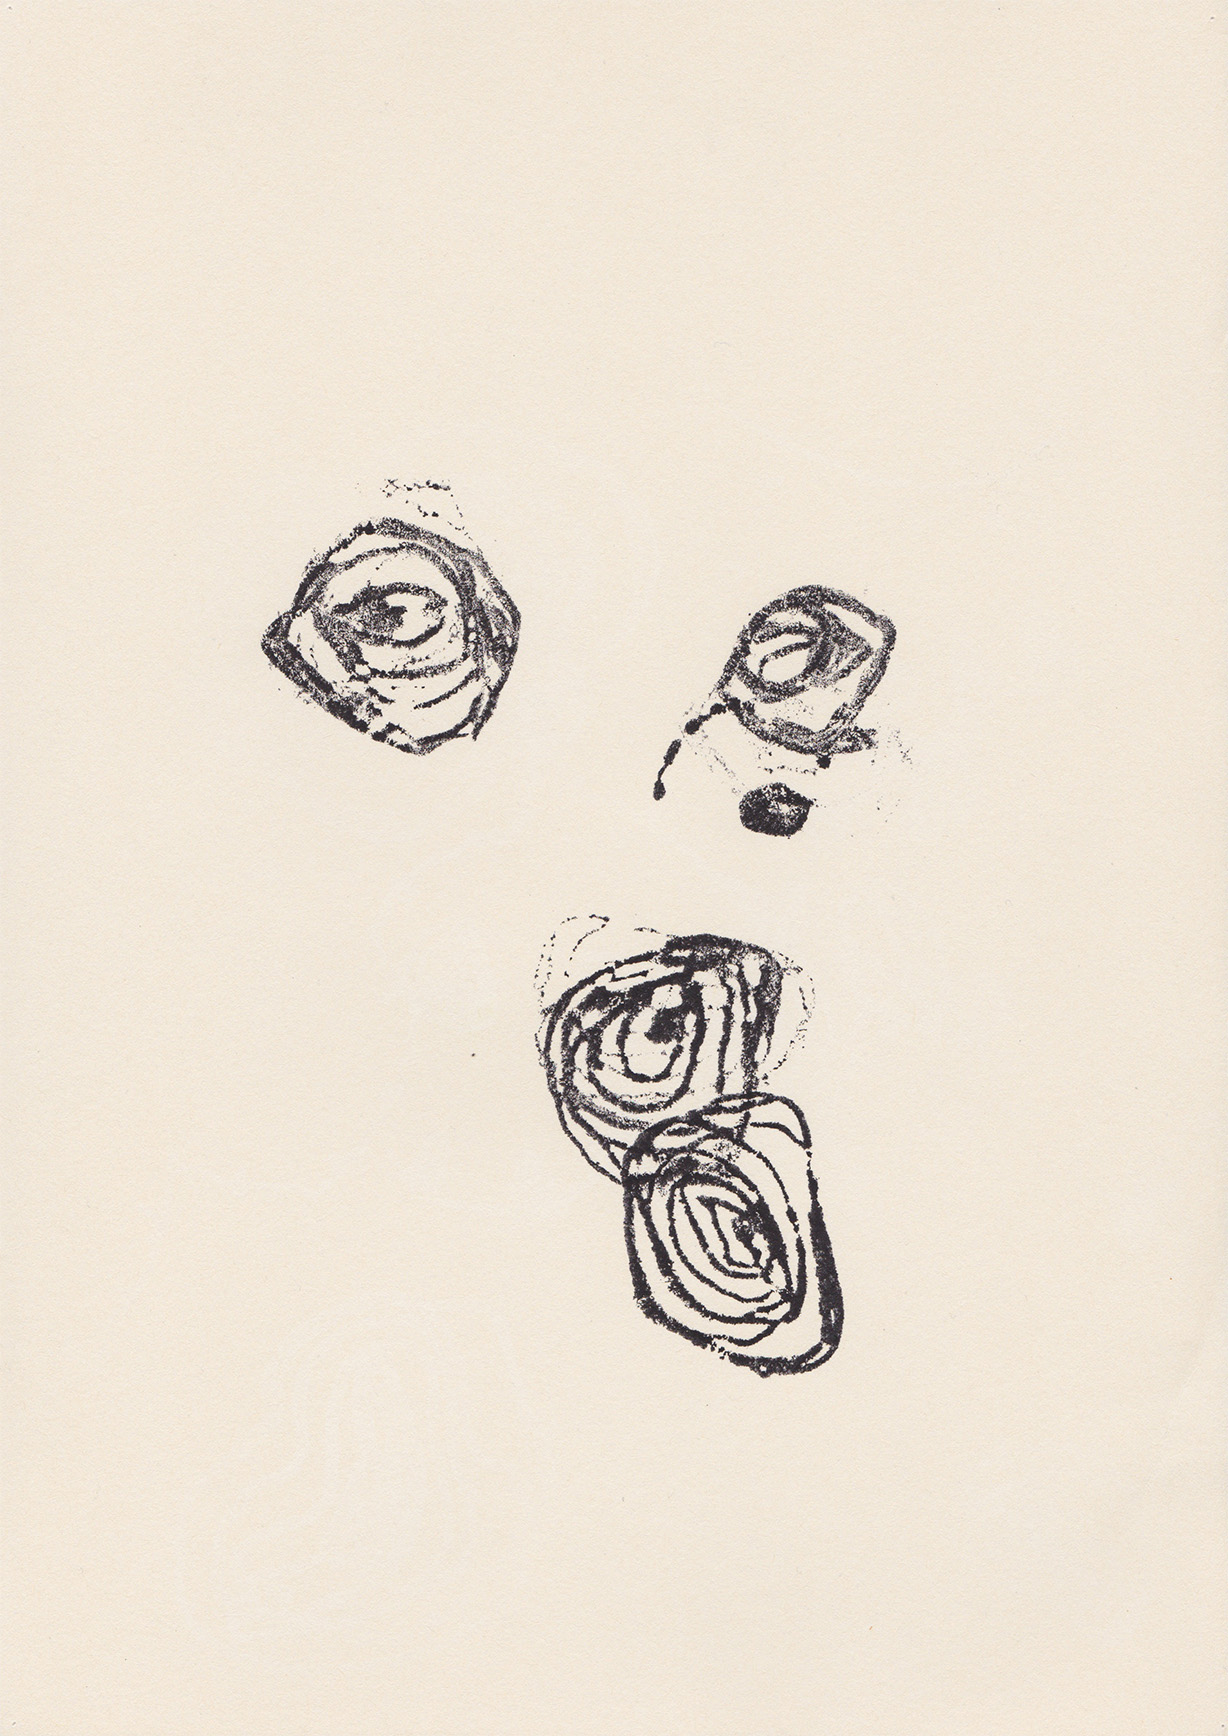 Georges Bataille, monotype, 2013